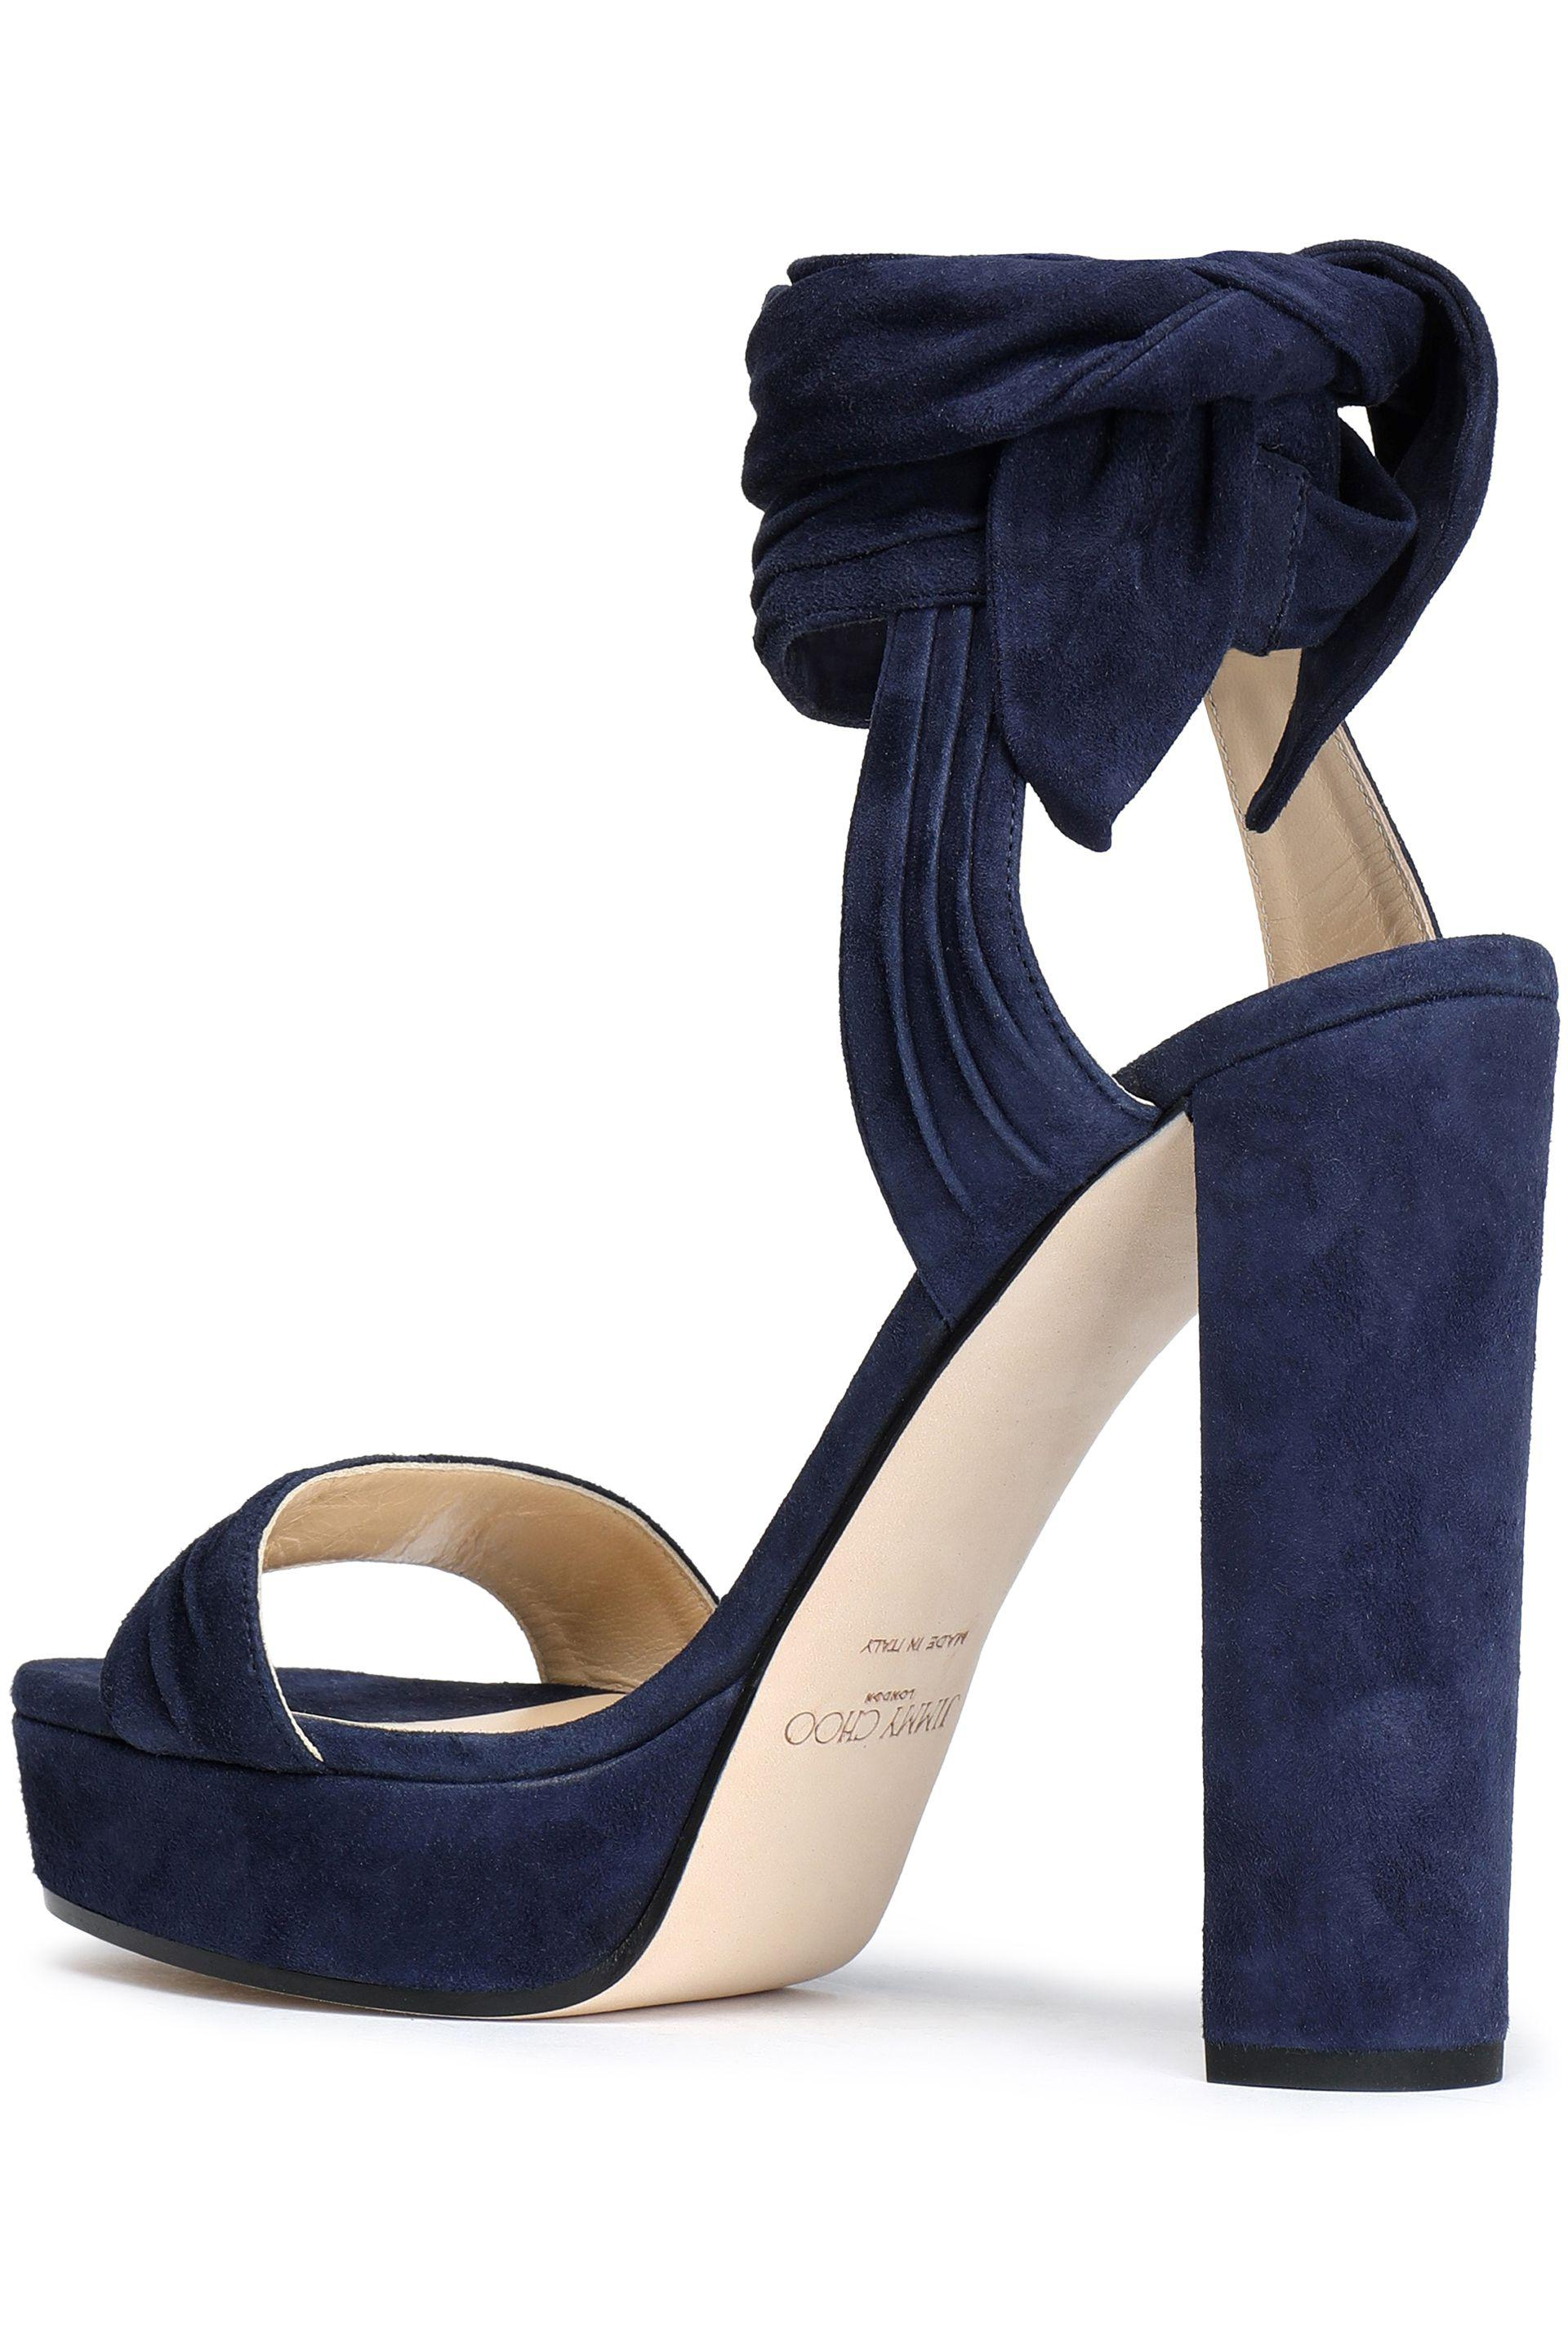 Jimmy Choo Woman Kaytrin Ruched Suede Sandals Navy Size 35 Jimmy Choo London jMQE4